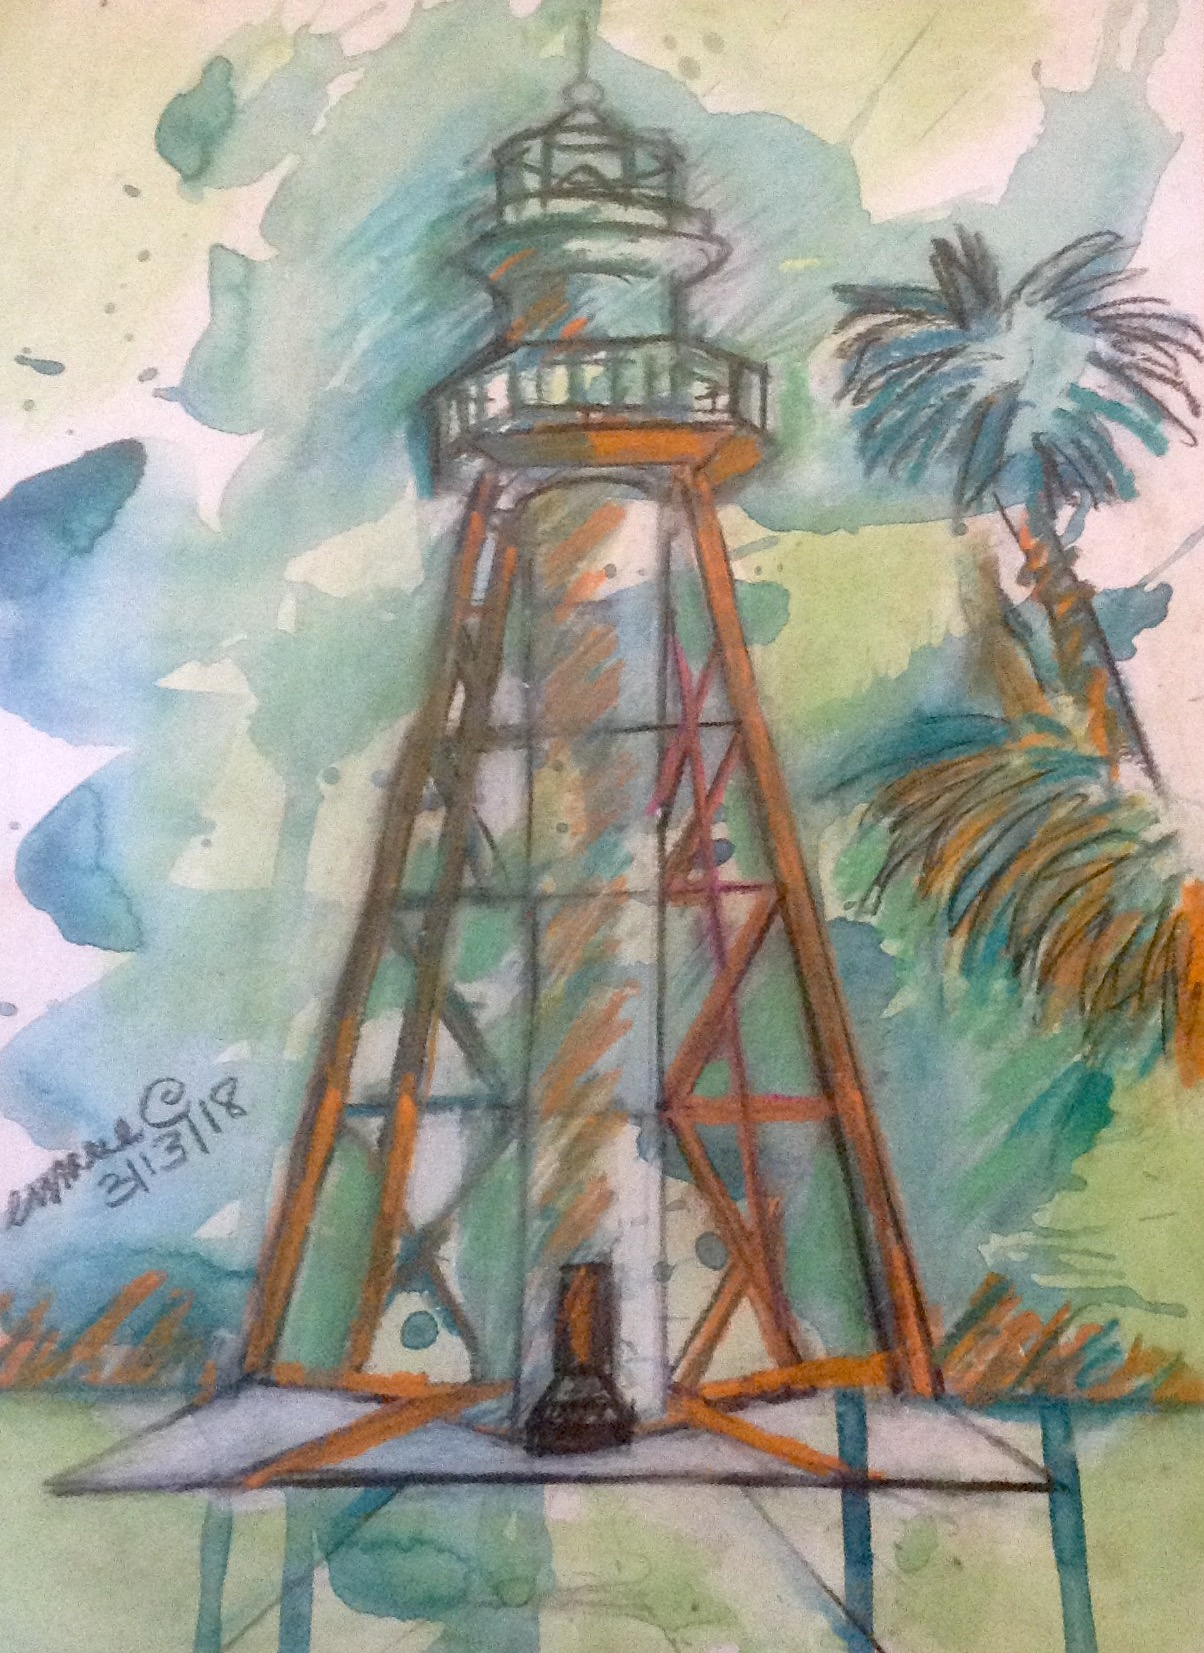 Anclote Key Lighthouse, Anclote Key State Preserve, Florida